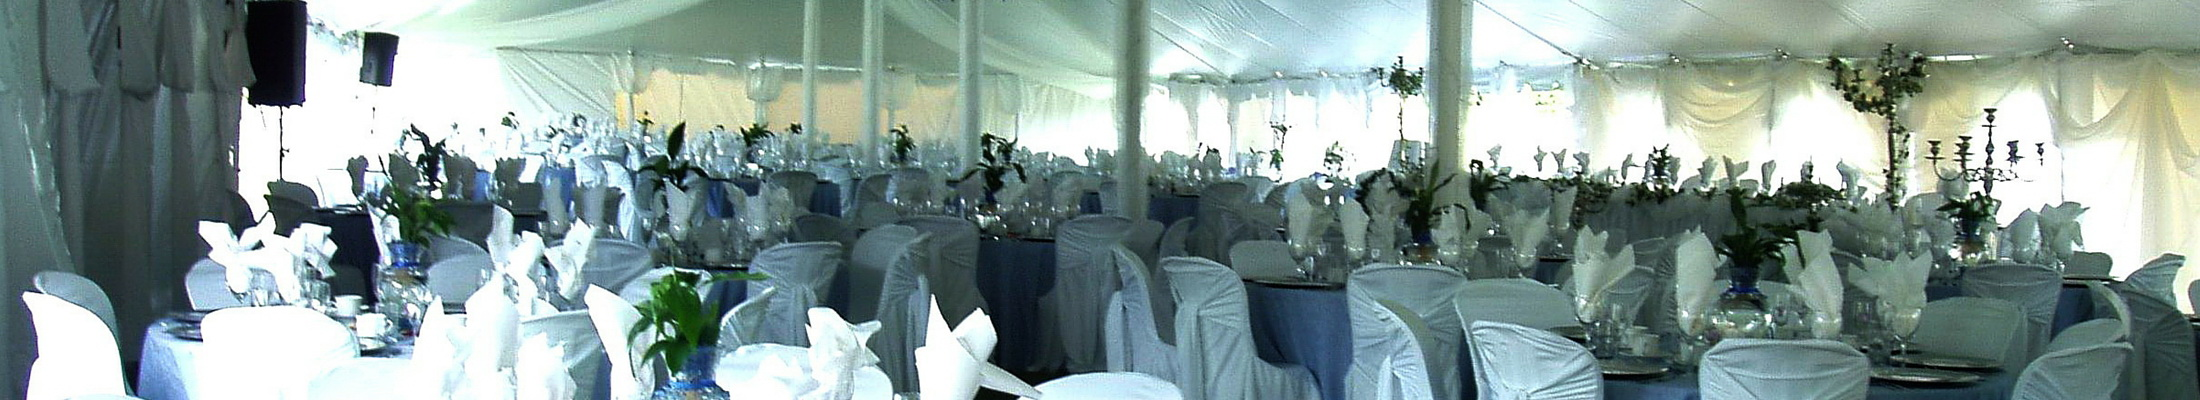 Caledon catering tent wedding reception